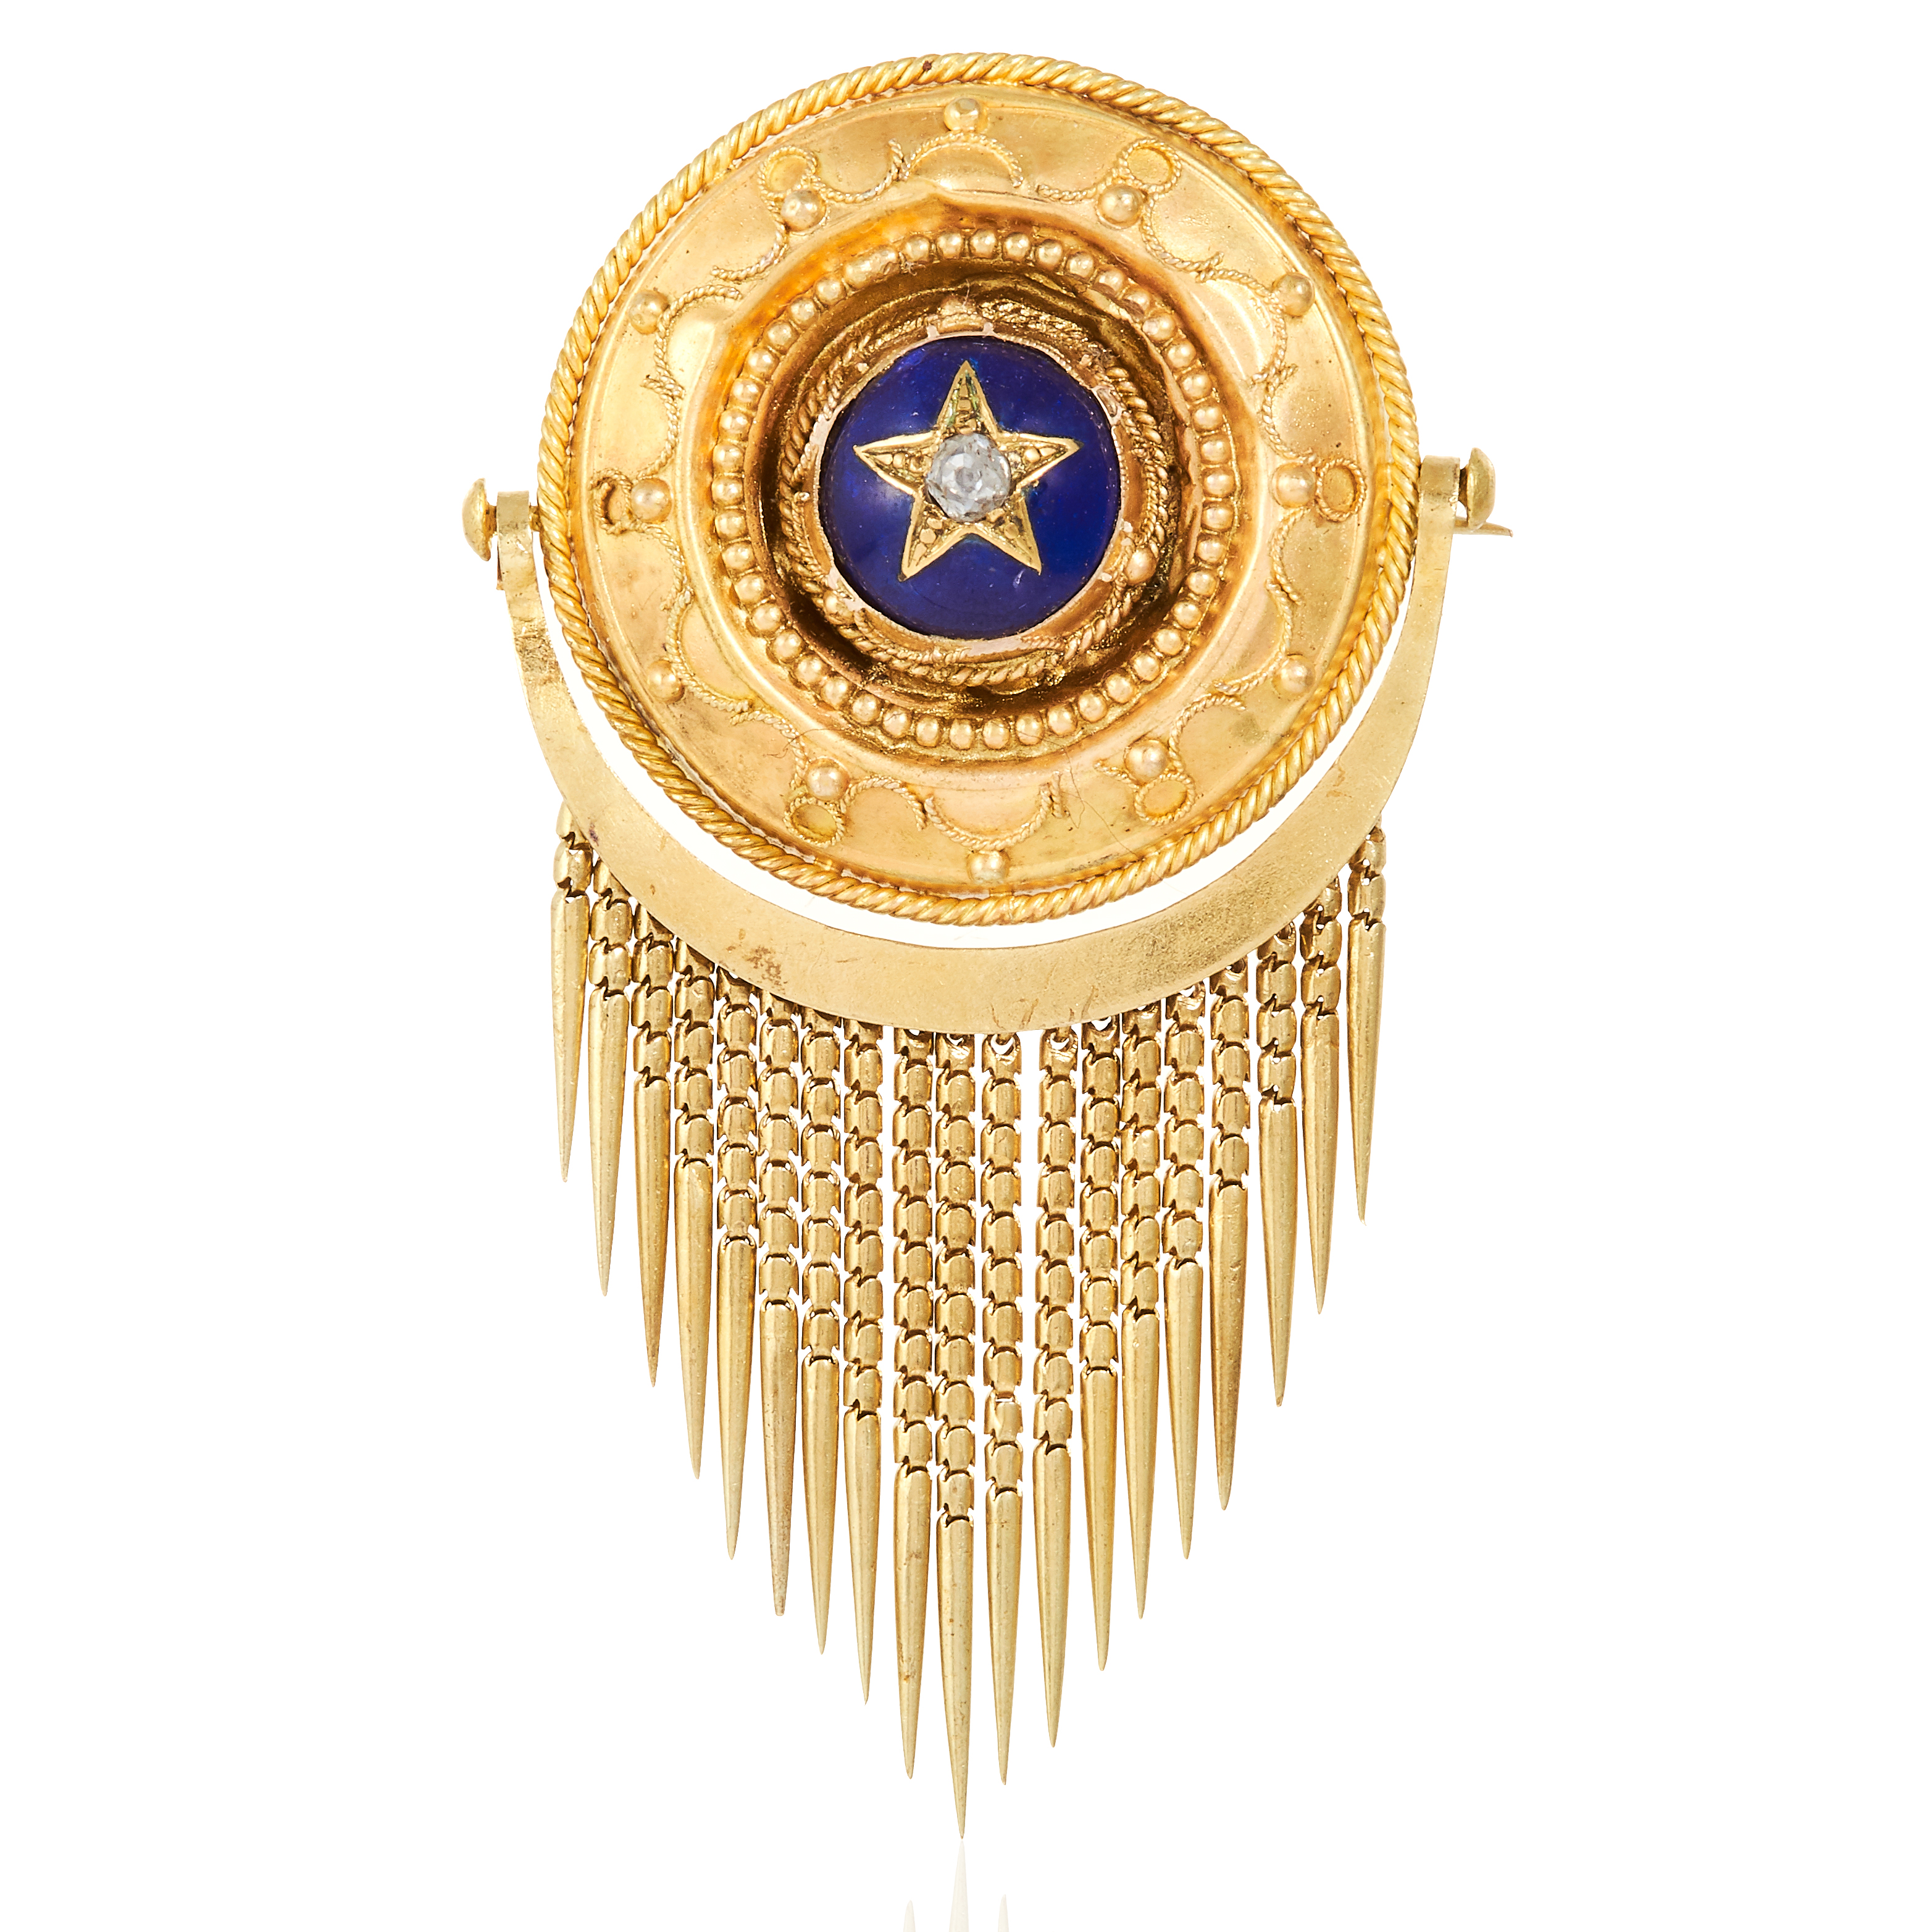 Los 42 - A DIAMOND AND ENAMEL MOURNING BROOCH in high carat yellow gold, the large circular body set with